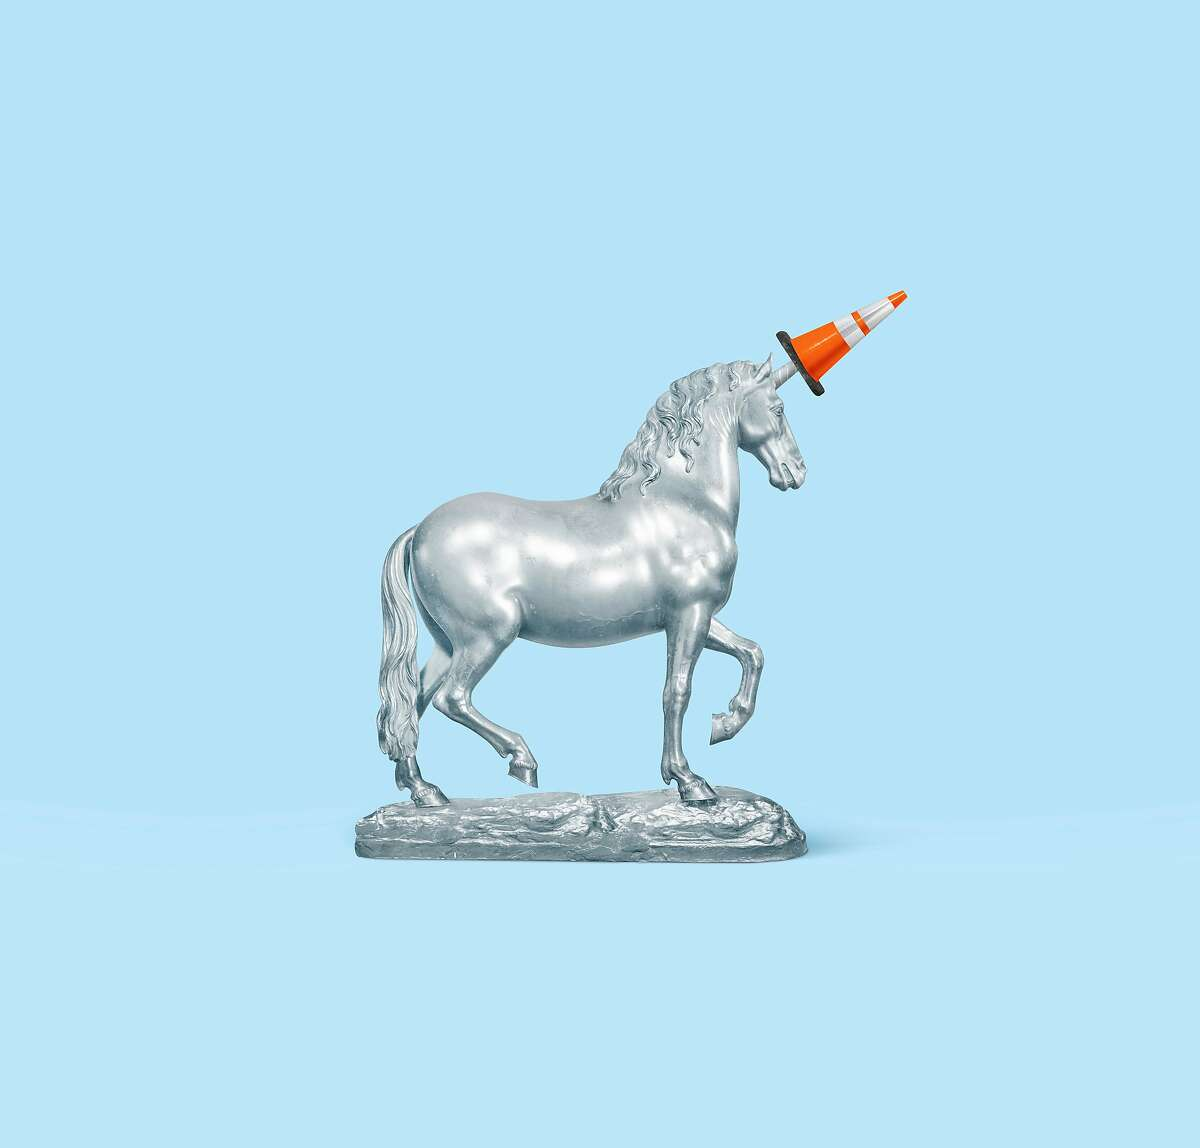 """Start-up investors are warning of a reckoning after the stumbles of some high-profile ?'unicorns.?"""" Now turning a profit is in. (Doug Chayka/The New York Times) -- NO SALES; FOR EDITORIAL USE ONLY WITH NYT STORY STARTUPS PRIORITIES BY ERIN GRIFFITH FOR OCT. 8, 2019. ALL OTHER USE PROHIBITED. -"""